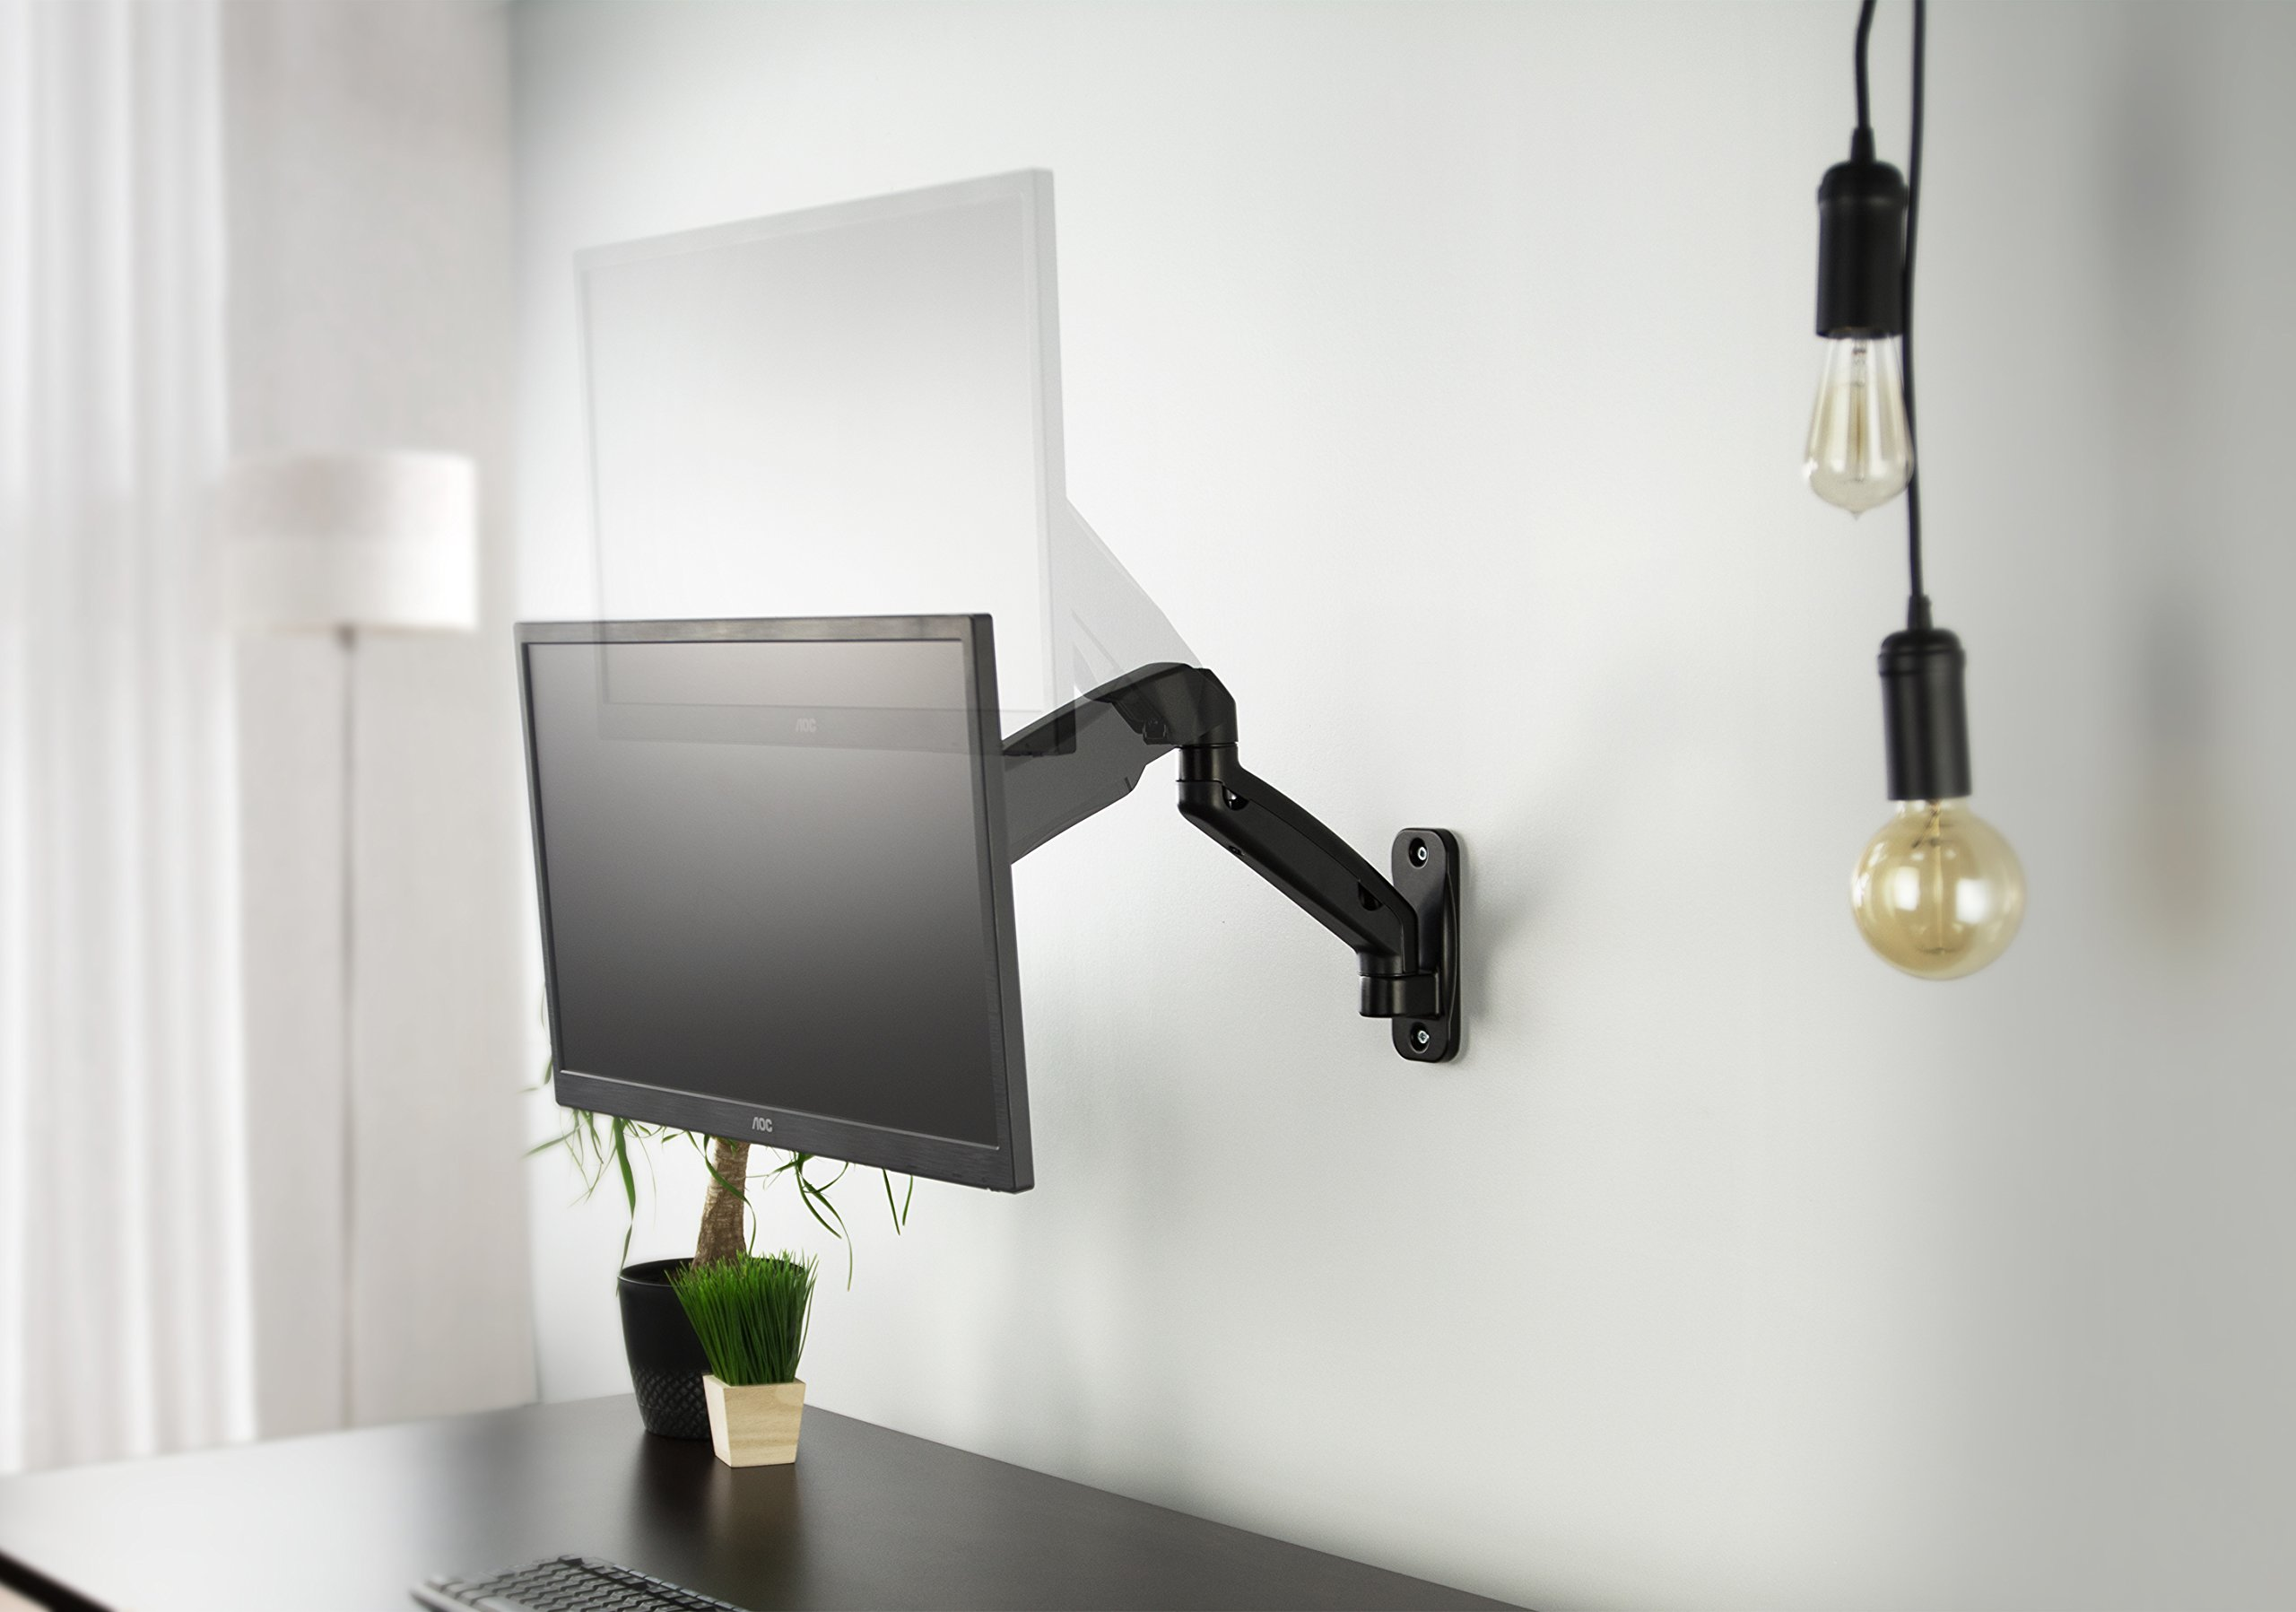 VIVO Black Height Adjustable Gas Spring Extended Arm Single Monitor Wall Mount Full Motion Articulating | fits 17'' to 27'' Screens (MOUNT-V001G) by VIVO (Image #4)